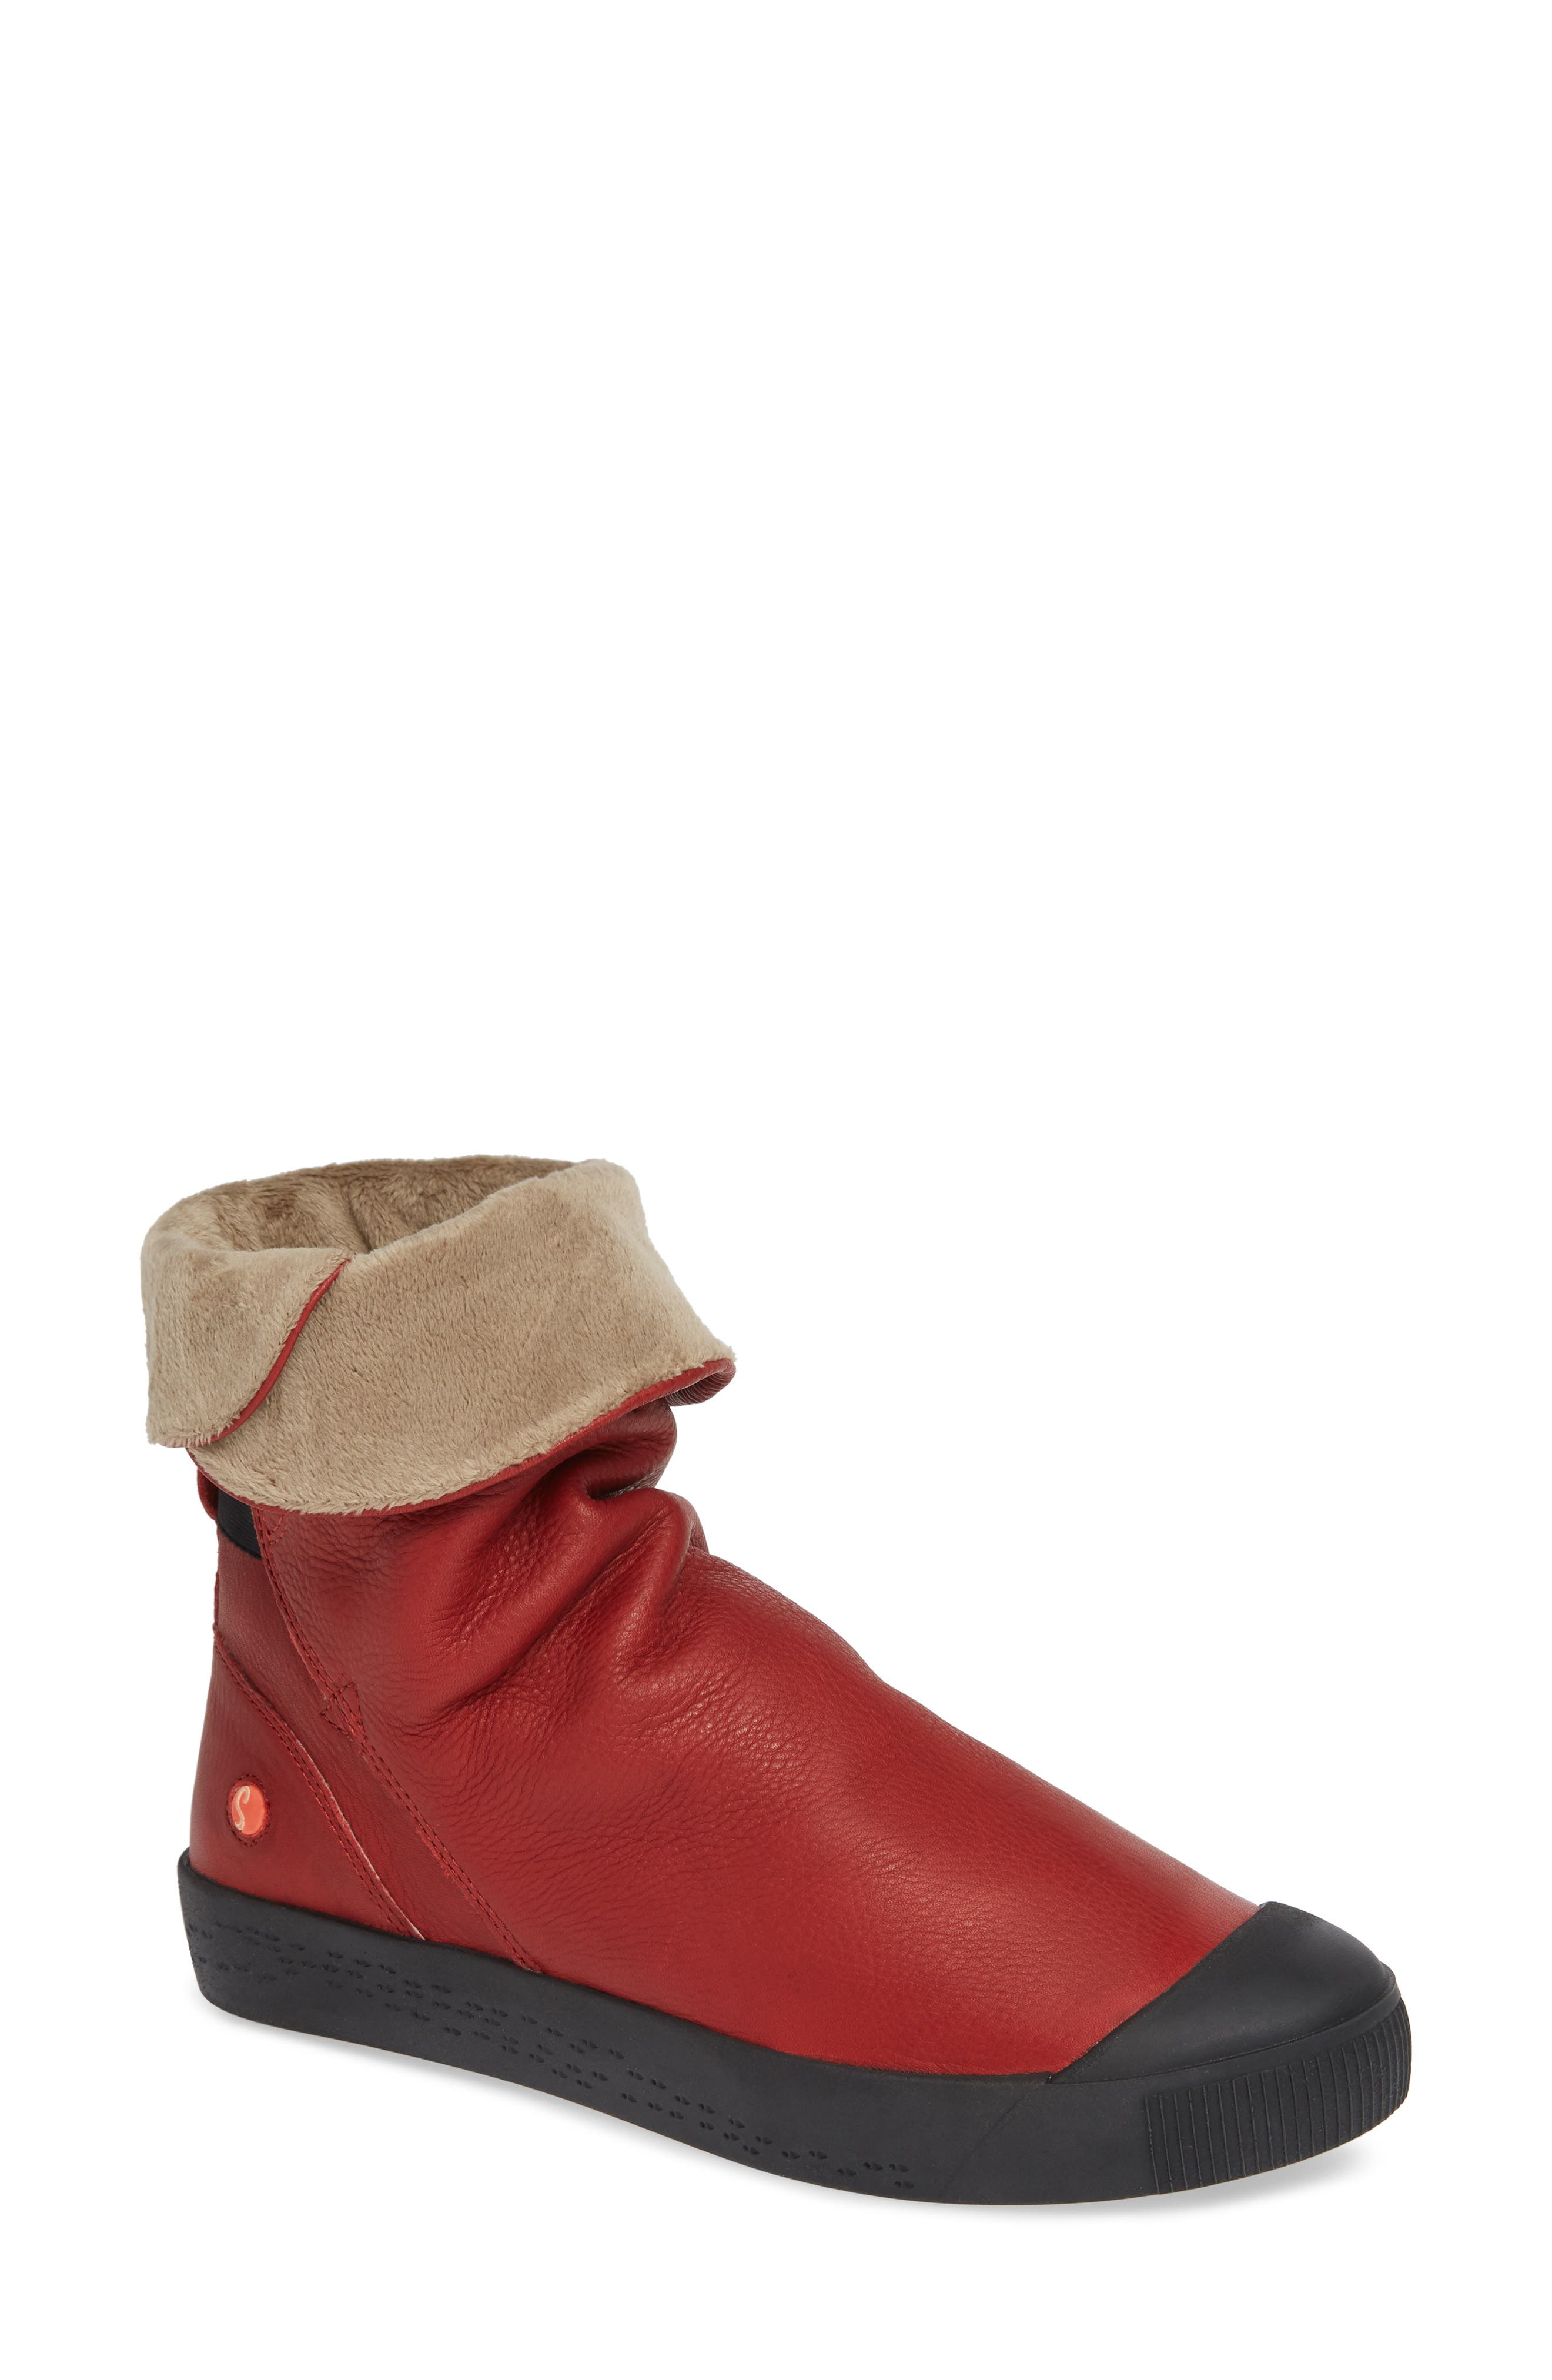 Softinos By Fly London Kaz Slouchy Sneaker Boot, Red